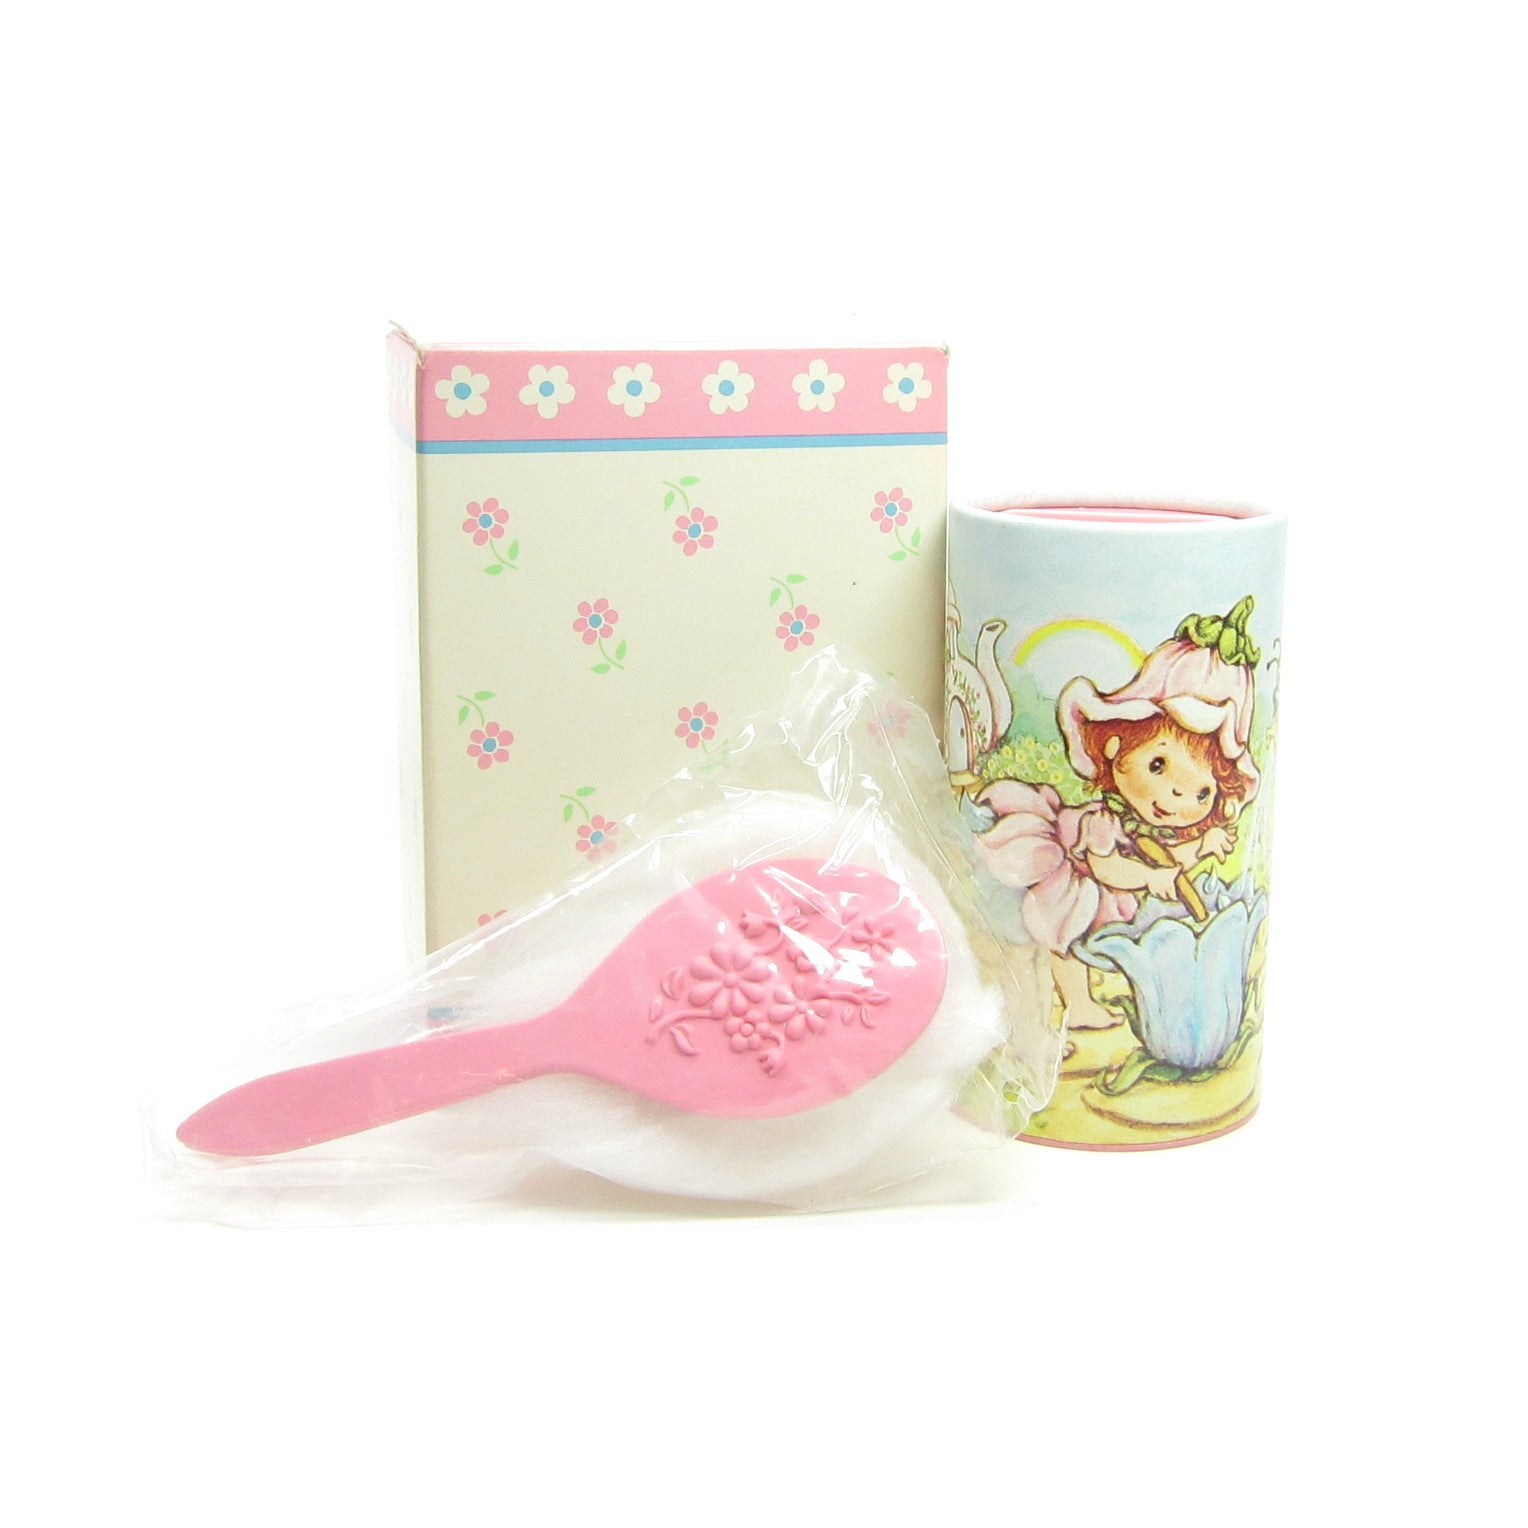 Little Blossom Whisper Soft Talc with Puff